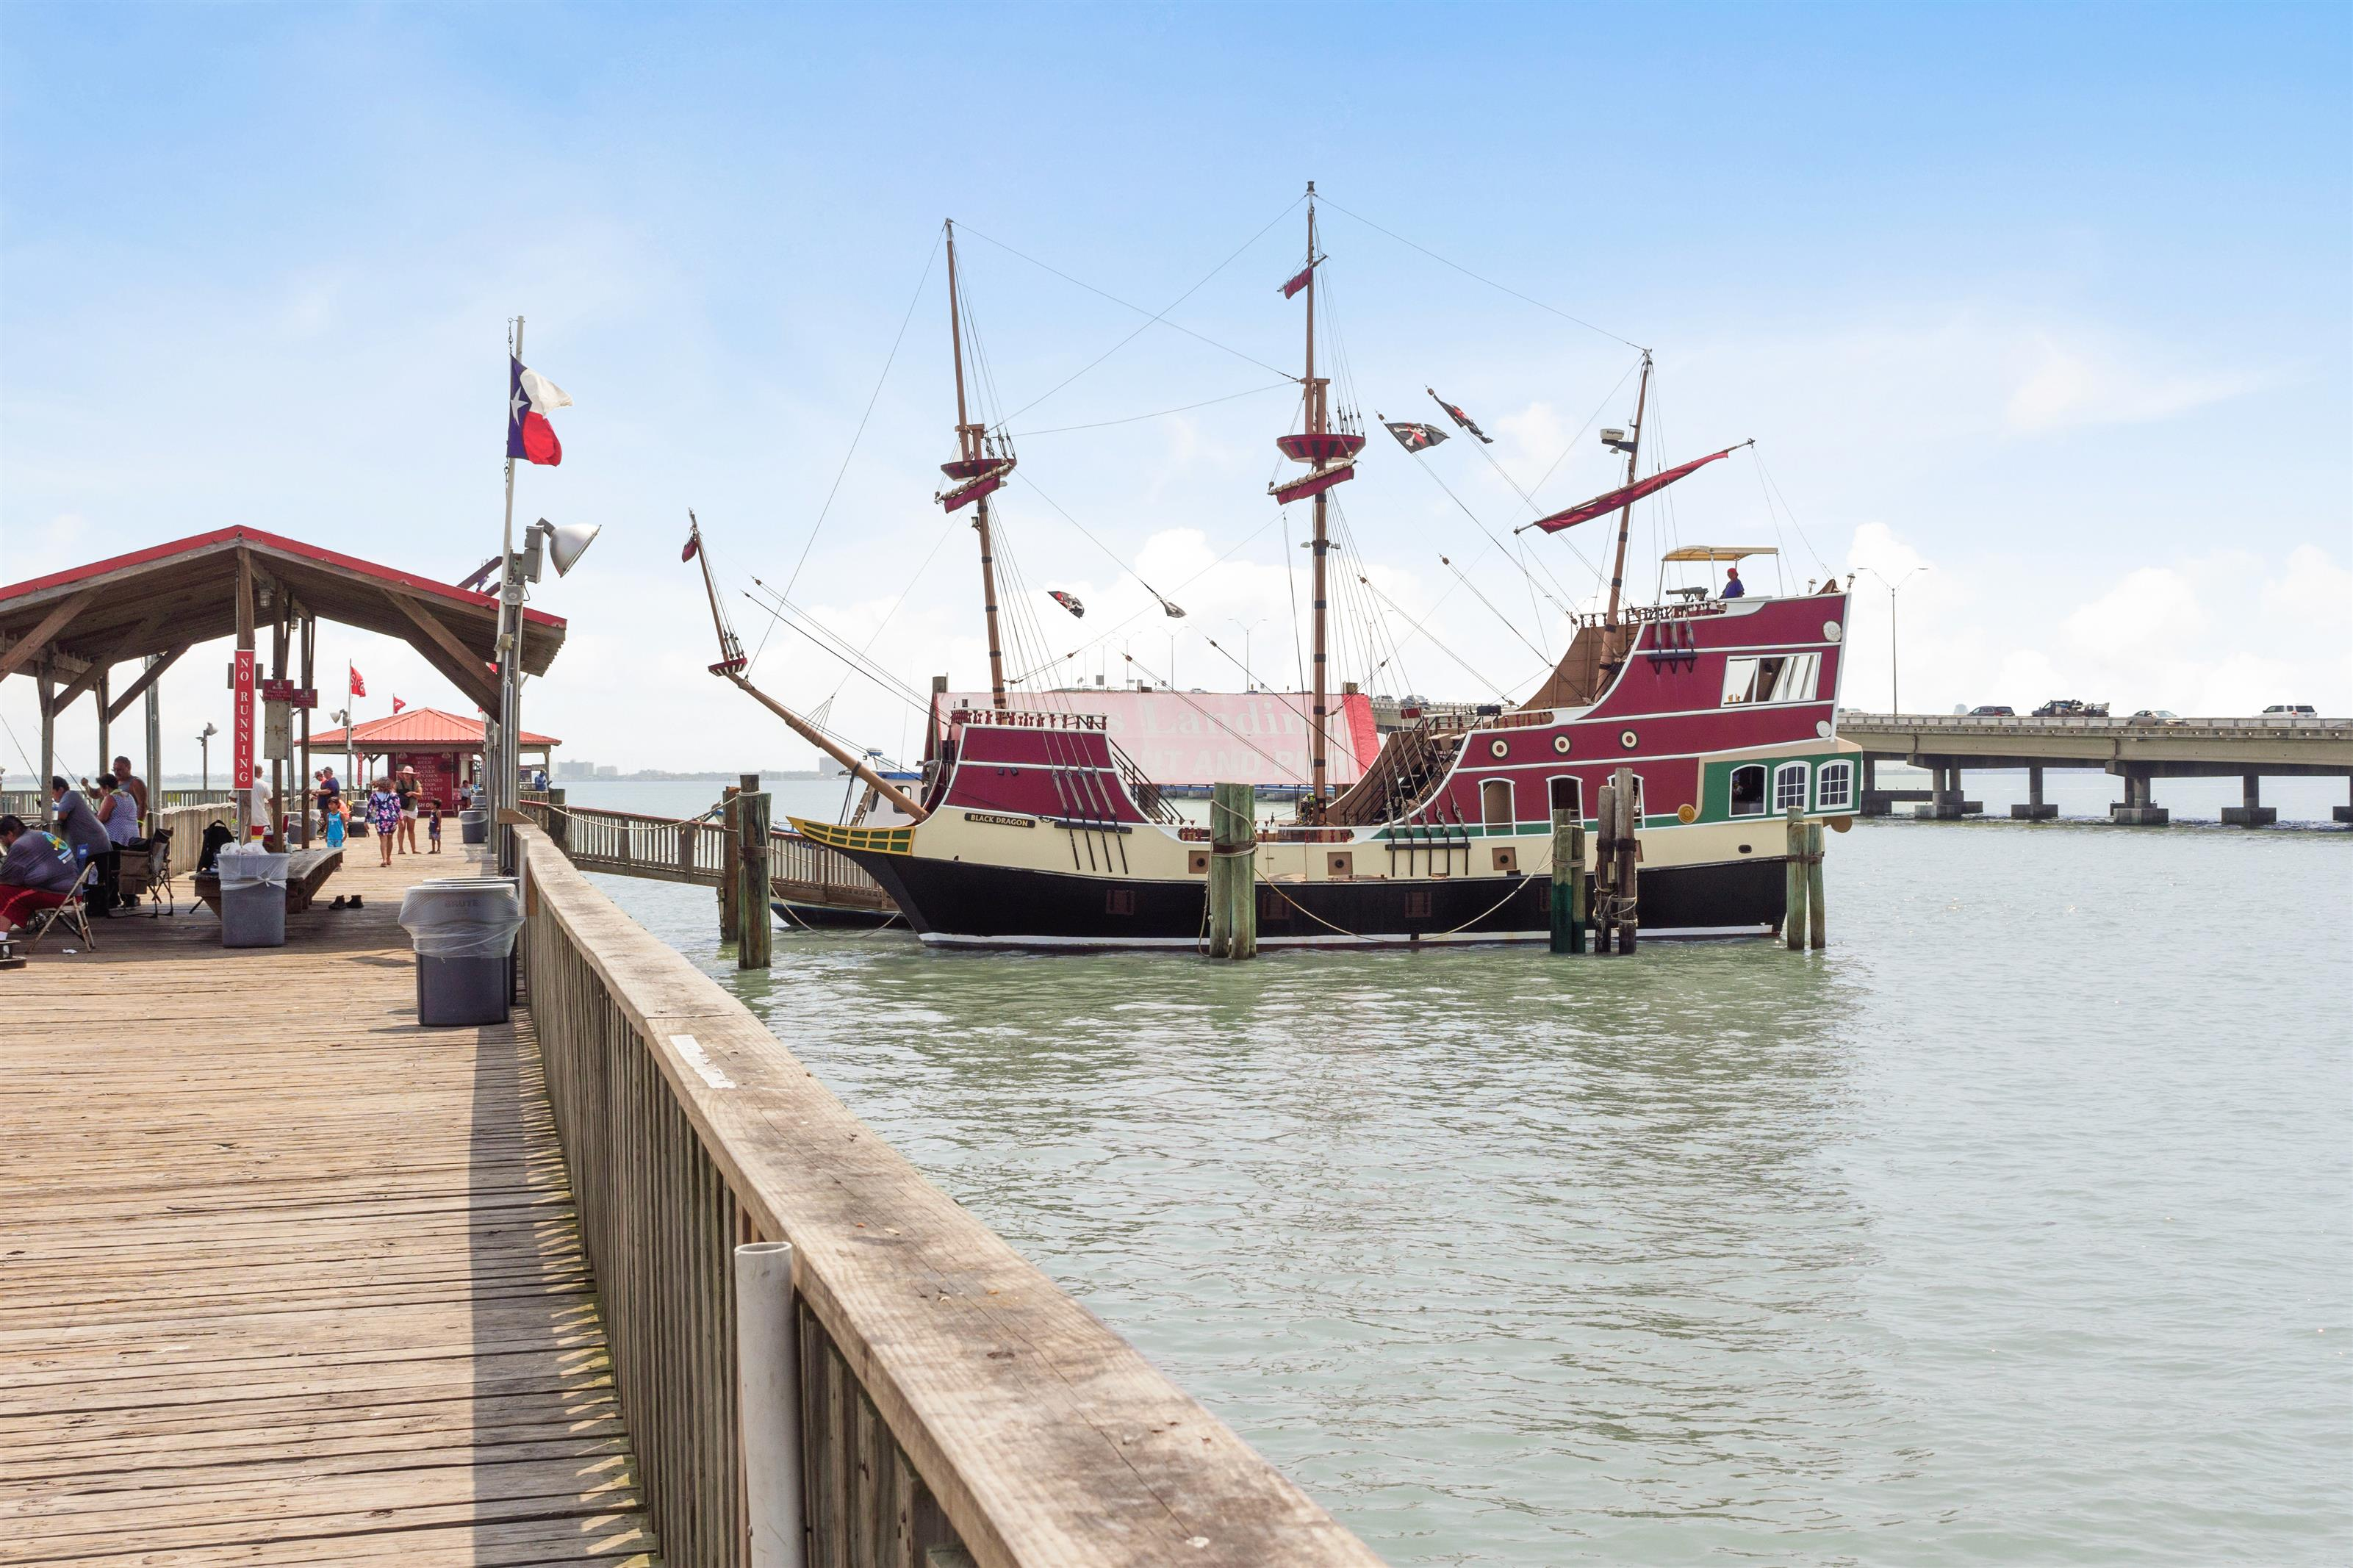 """The Dragon"" Pirate ship docked at the pier"